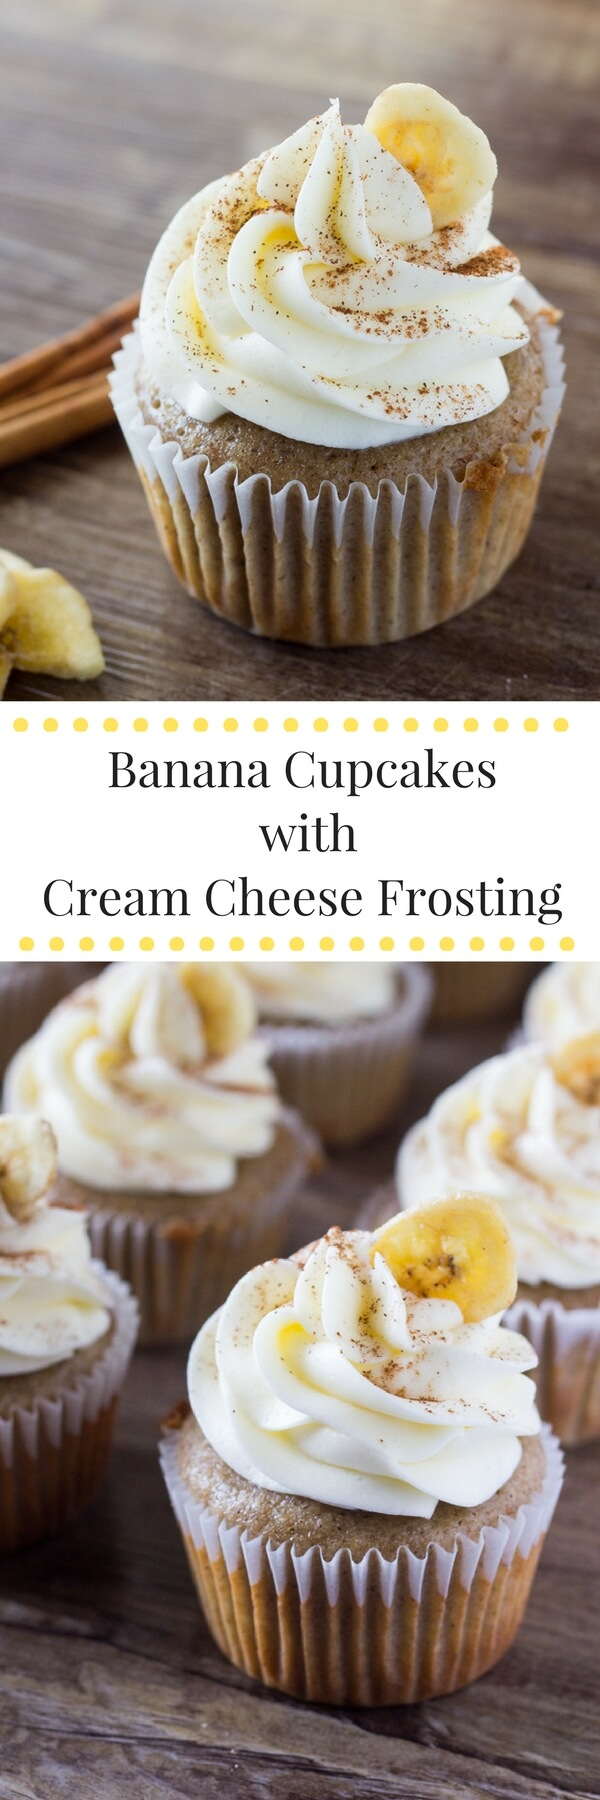 Banana Cupcakes with Cream Cheese Frosting. Light, fluffy, super moist with a classic banana flavor and topped with cream cheese frosting